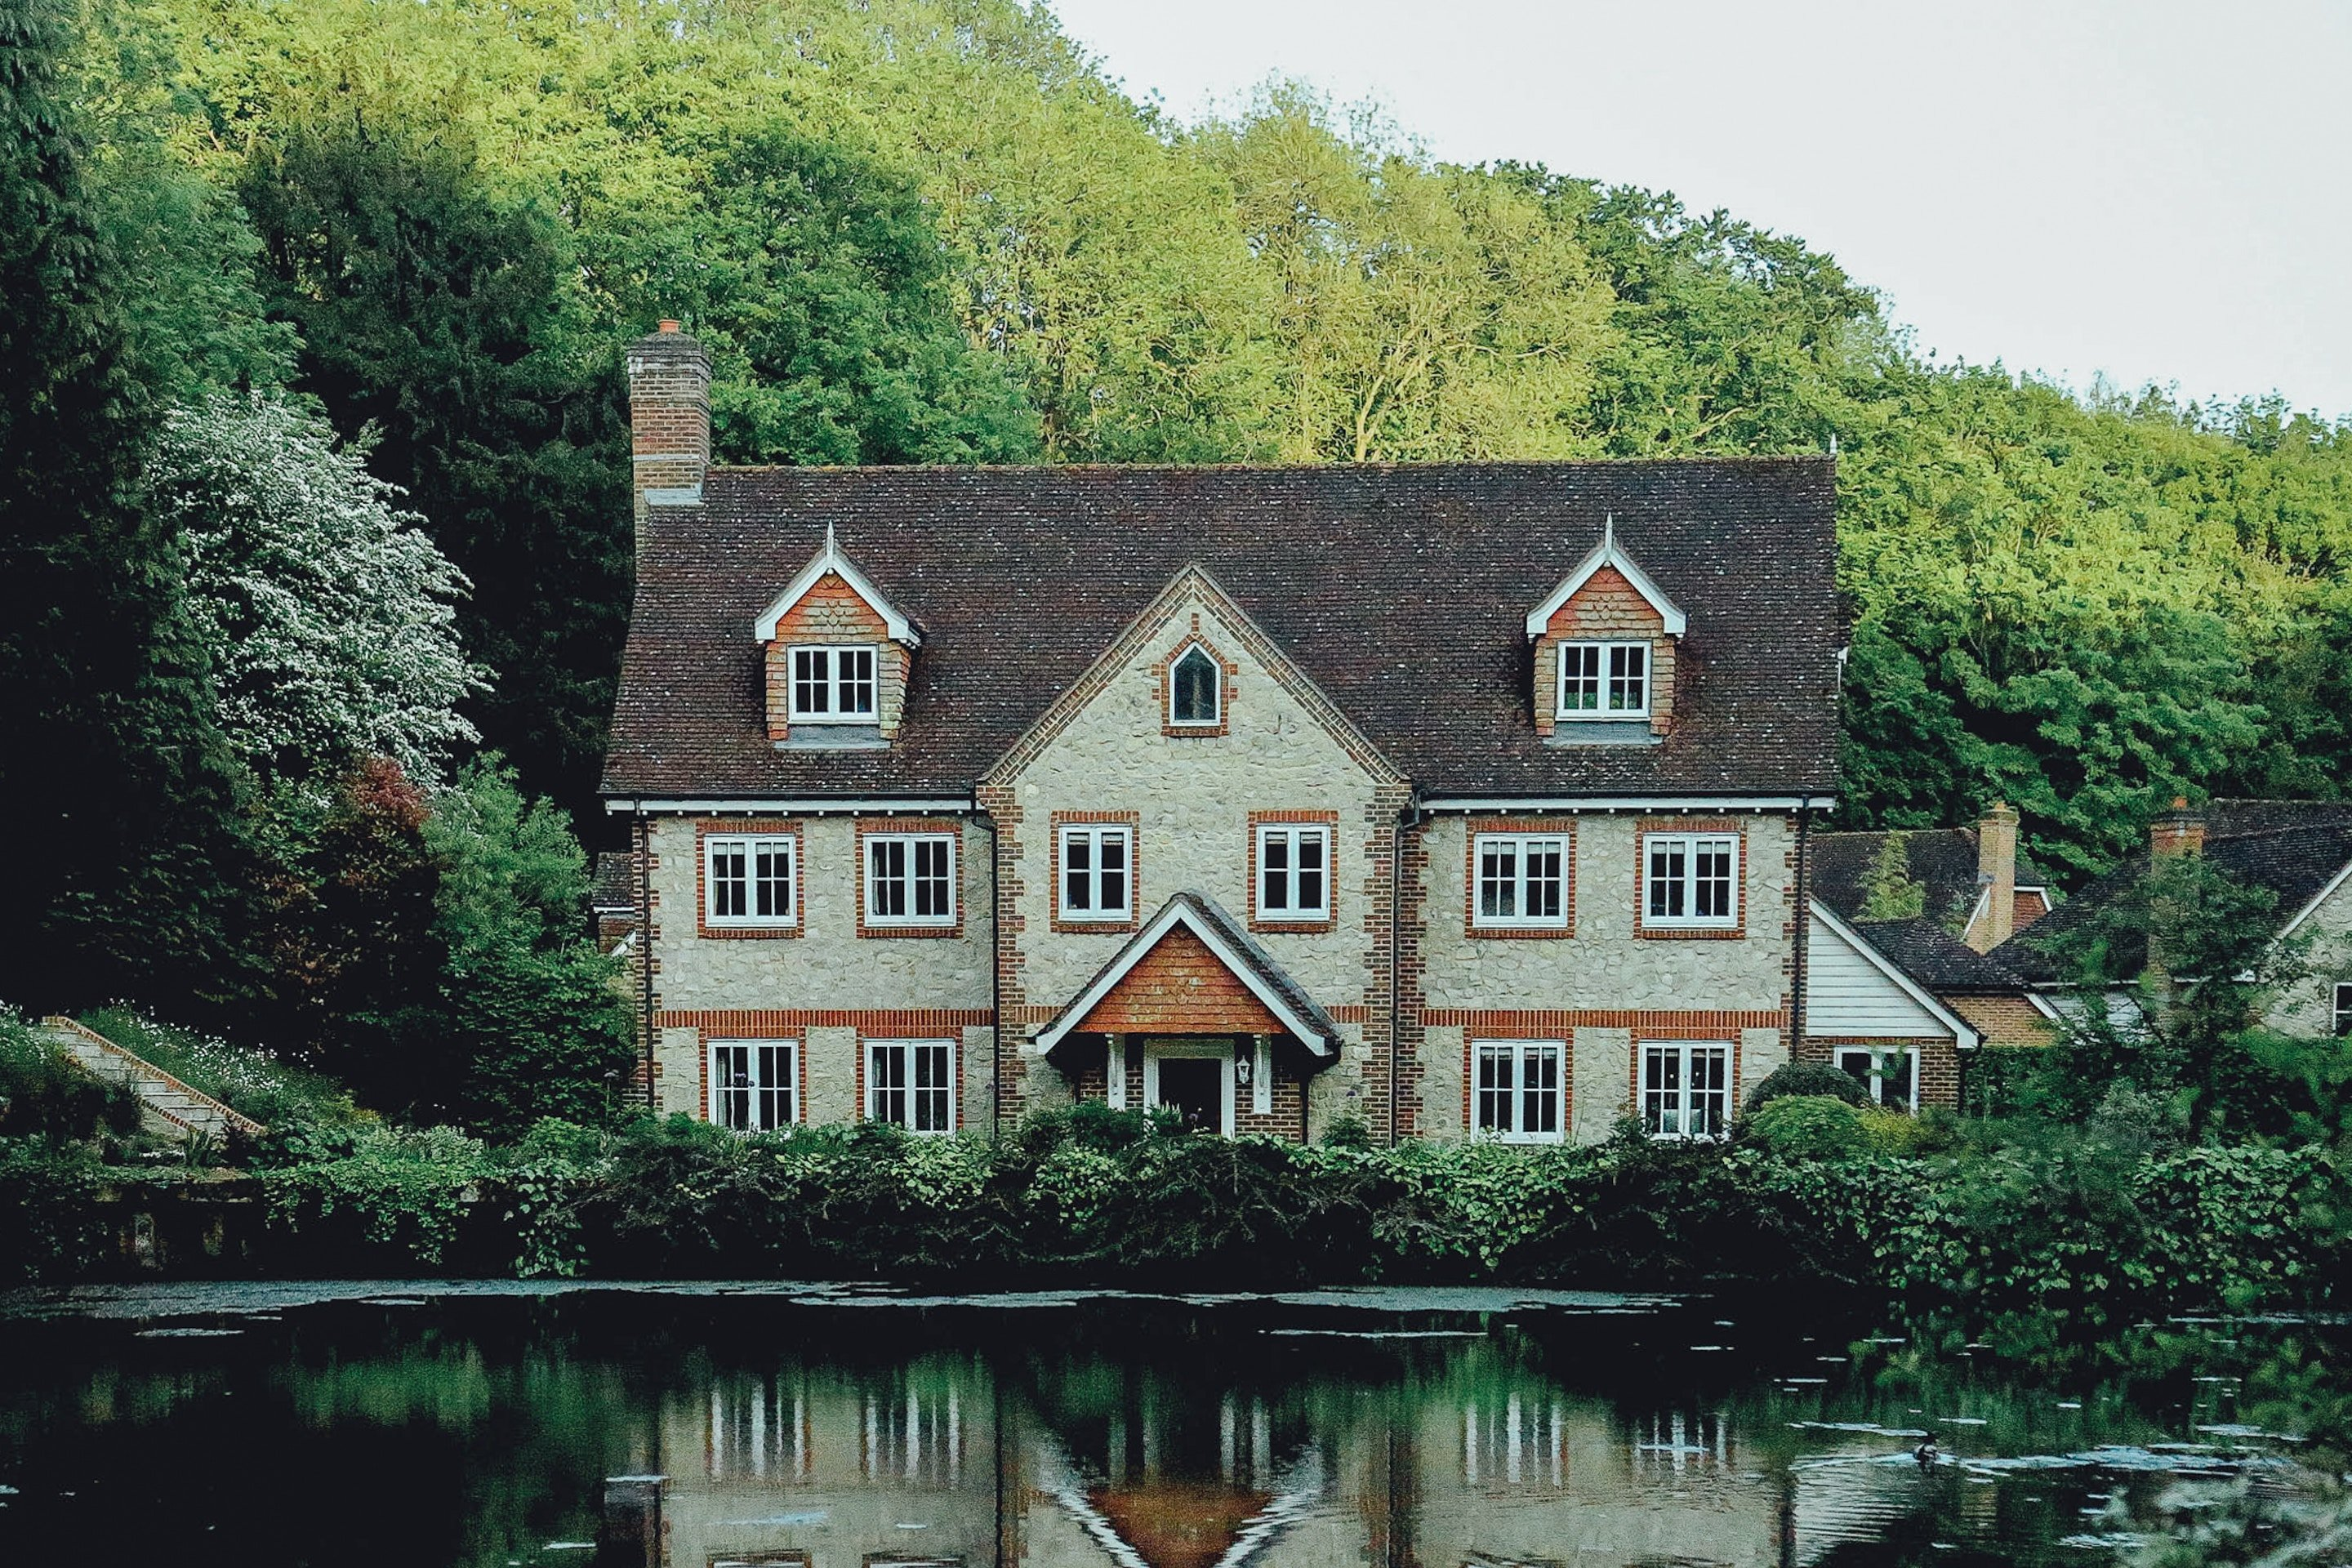 manor house on a lake